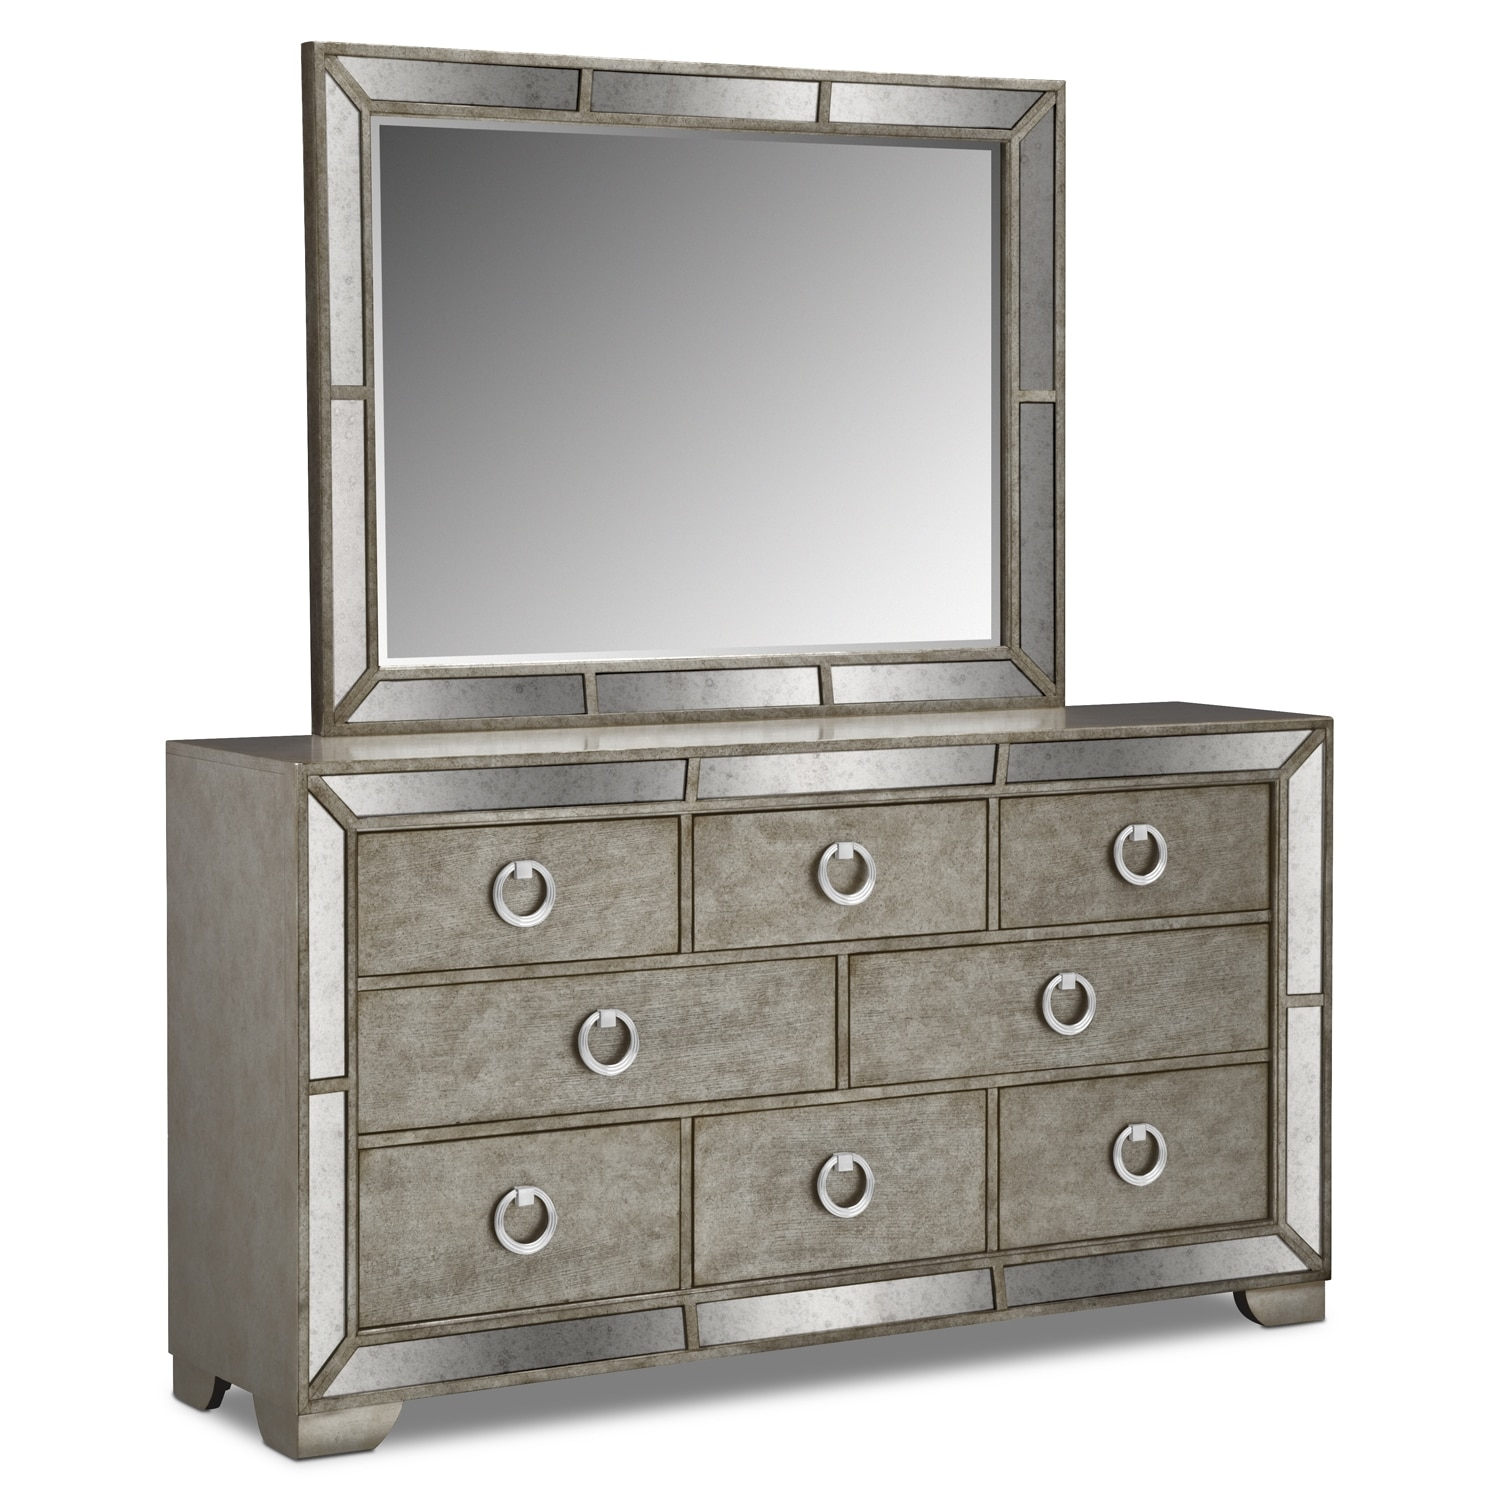 Bedroom Furniture - Angelina Dresser & Mirror